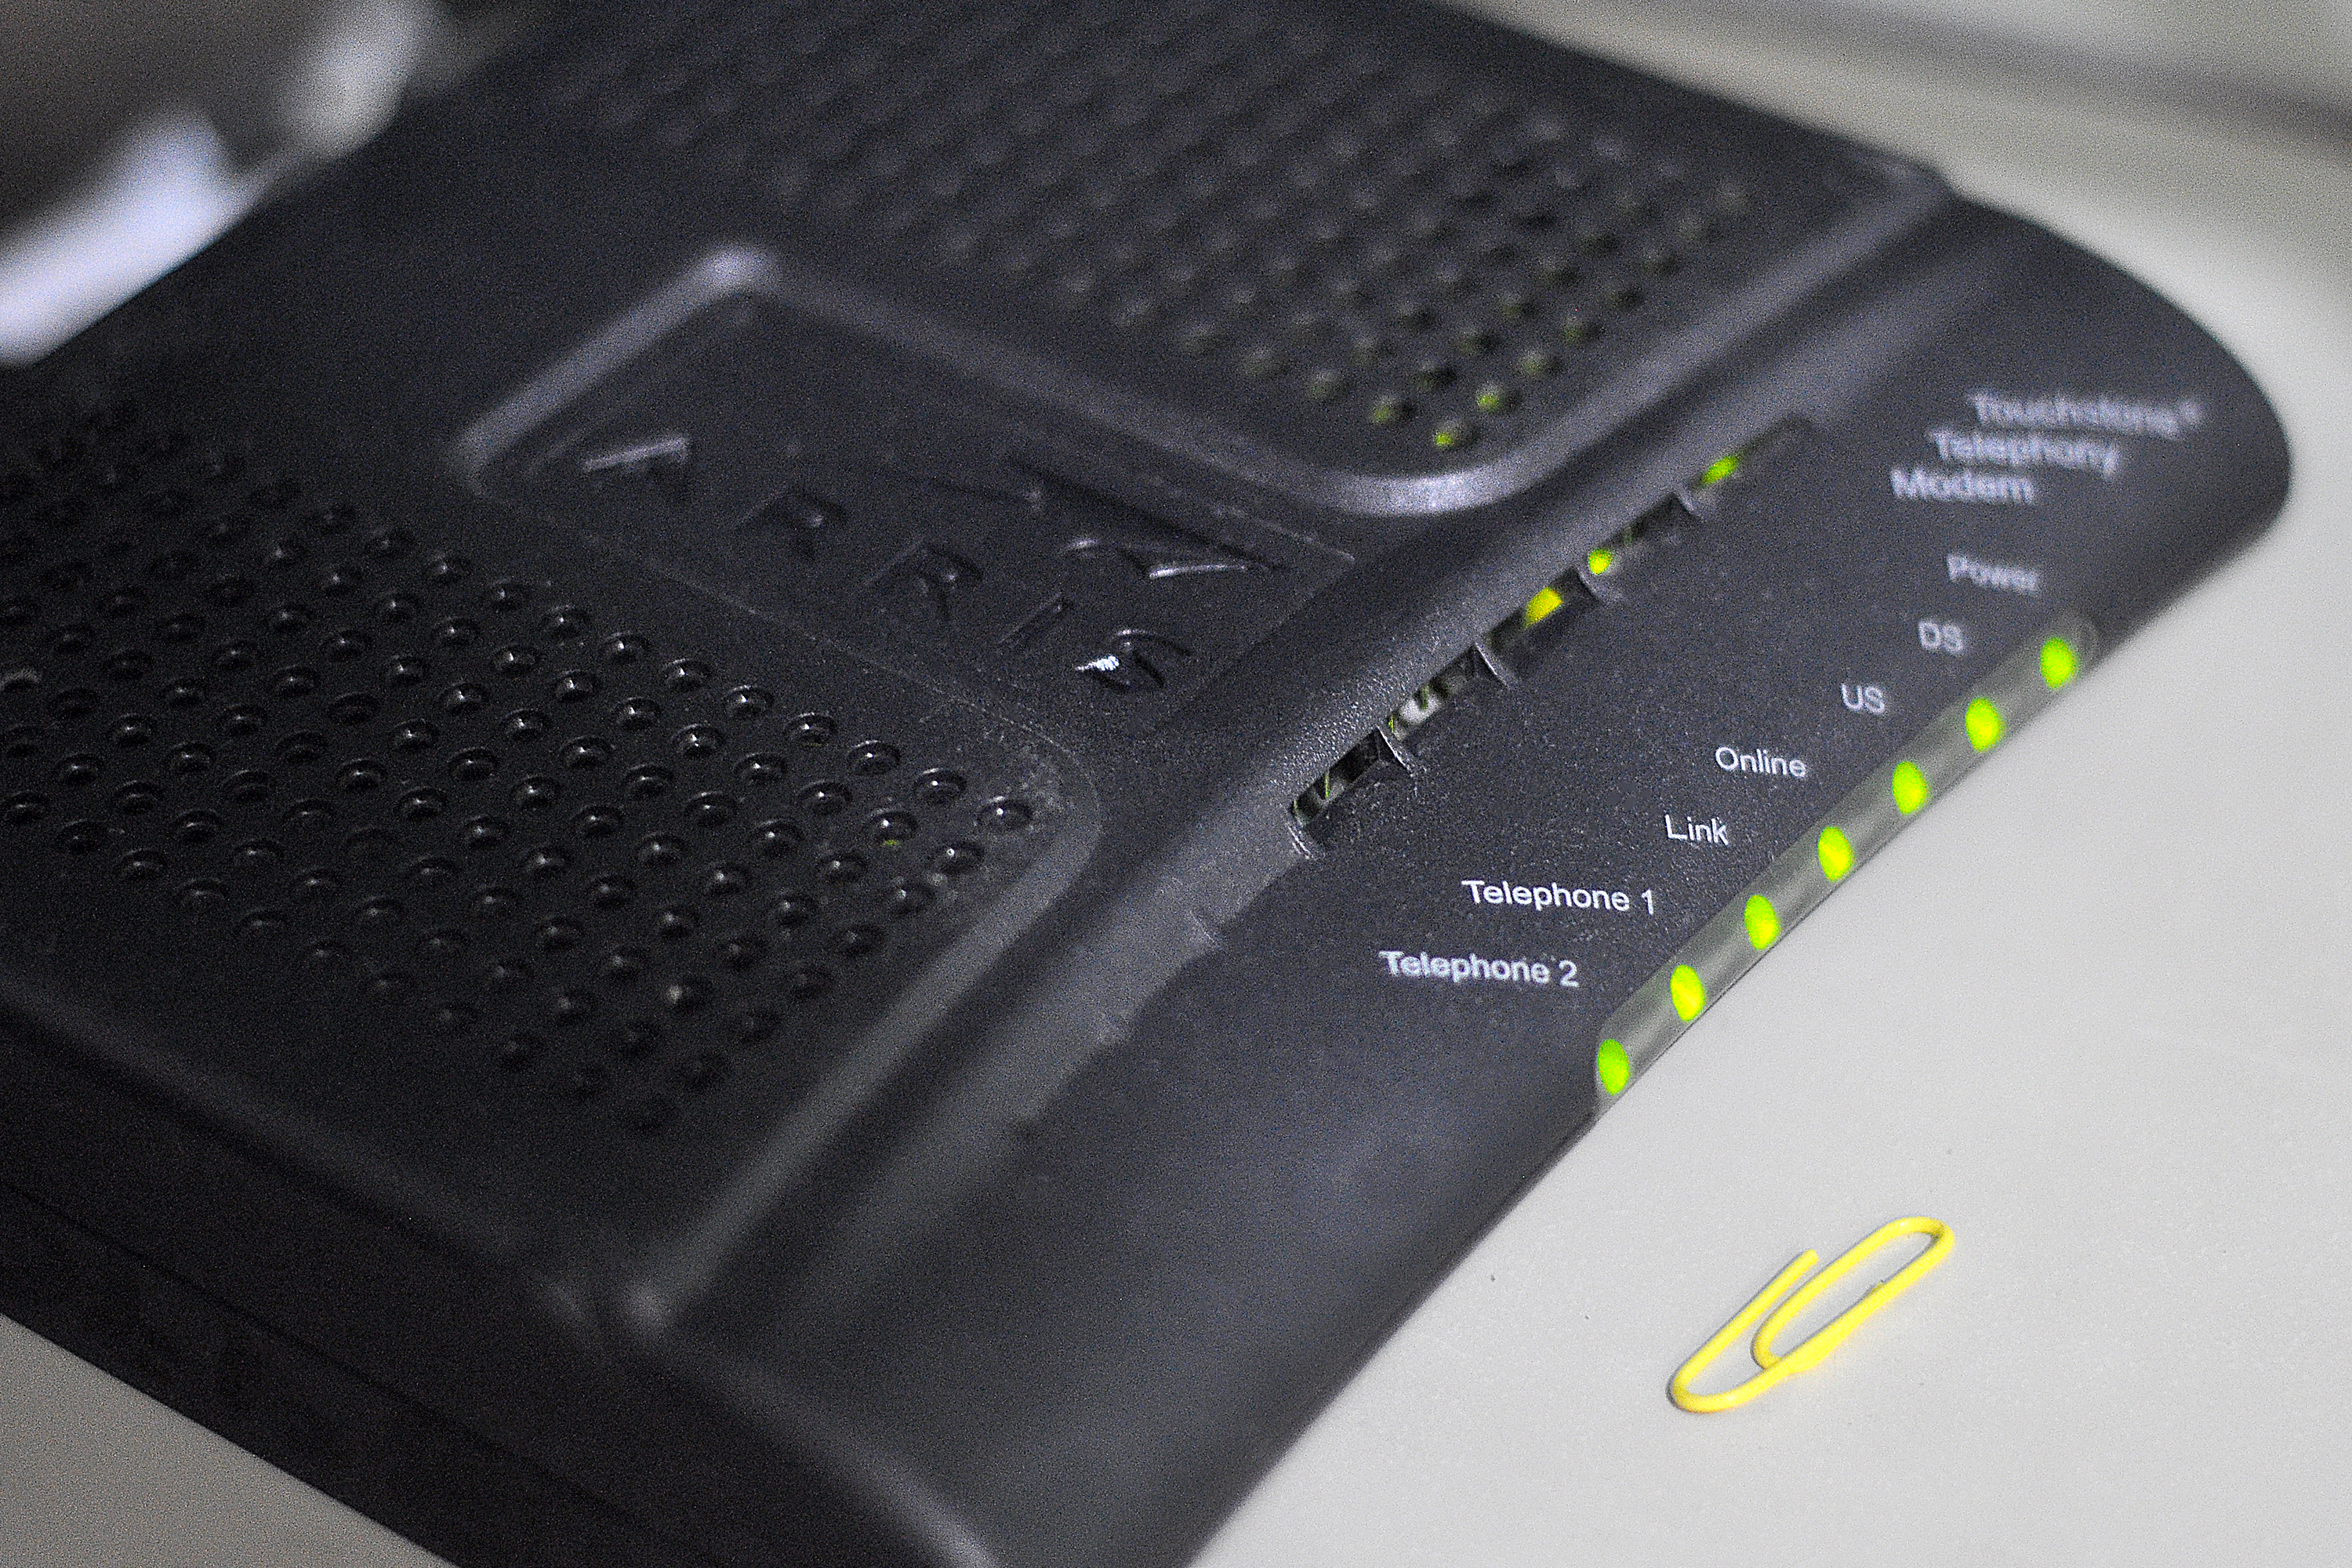 bHow to Reset an Arris Modem